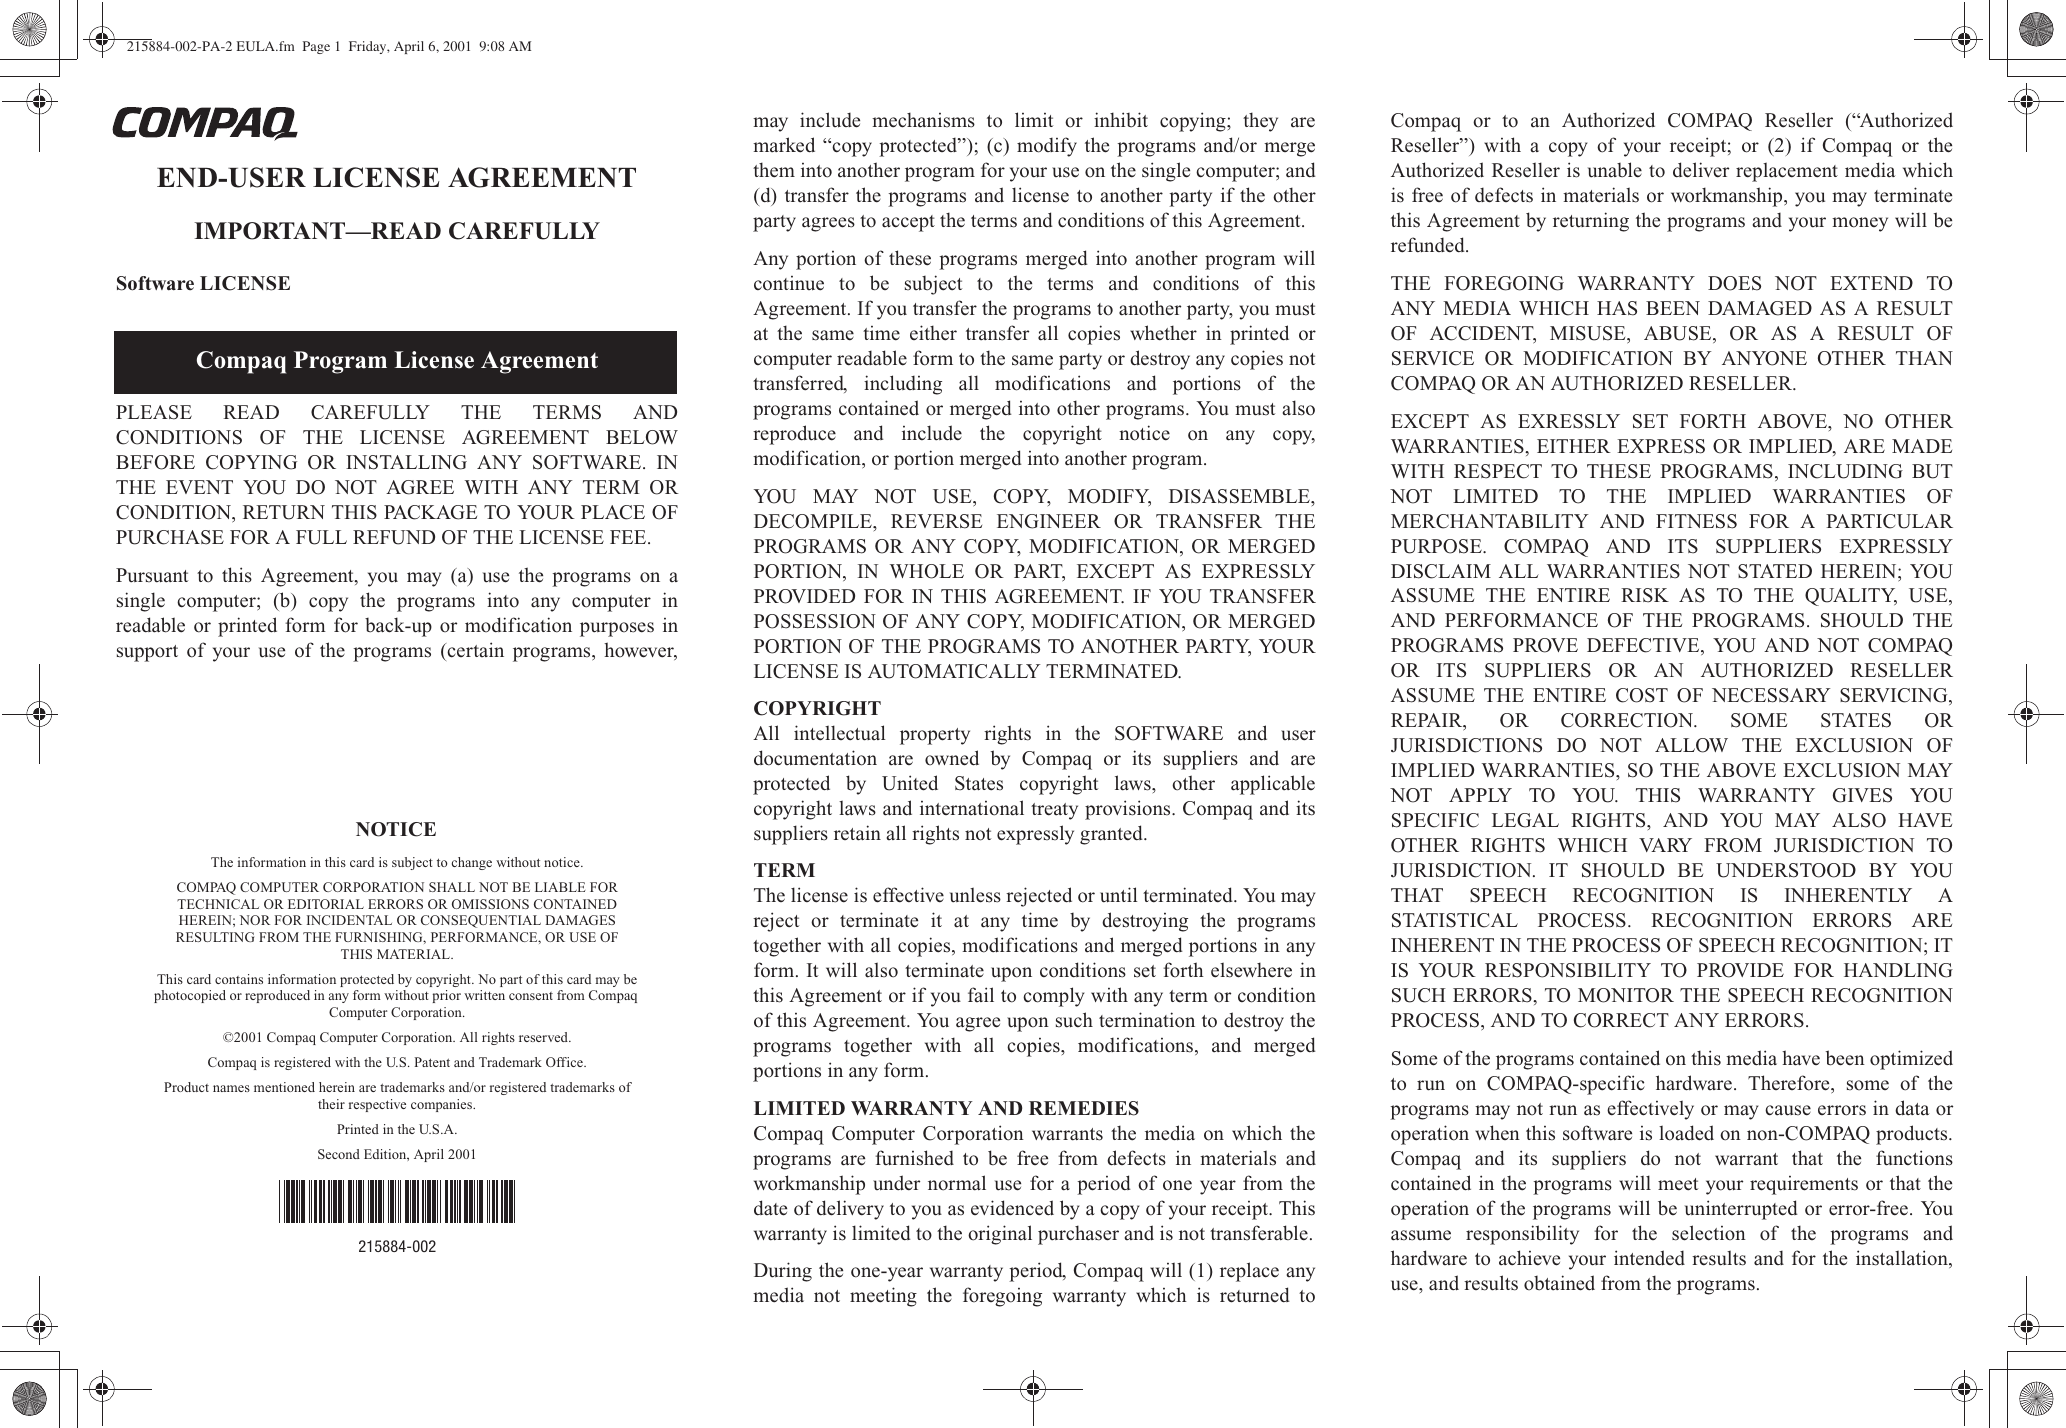 Hp 215884 002 Pa 2 Eula End User License Agreement Bpia0009